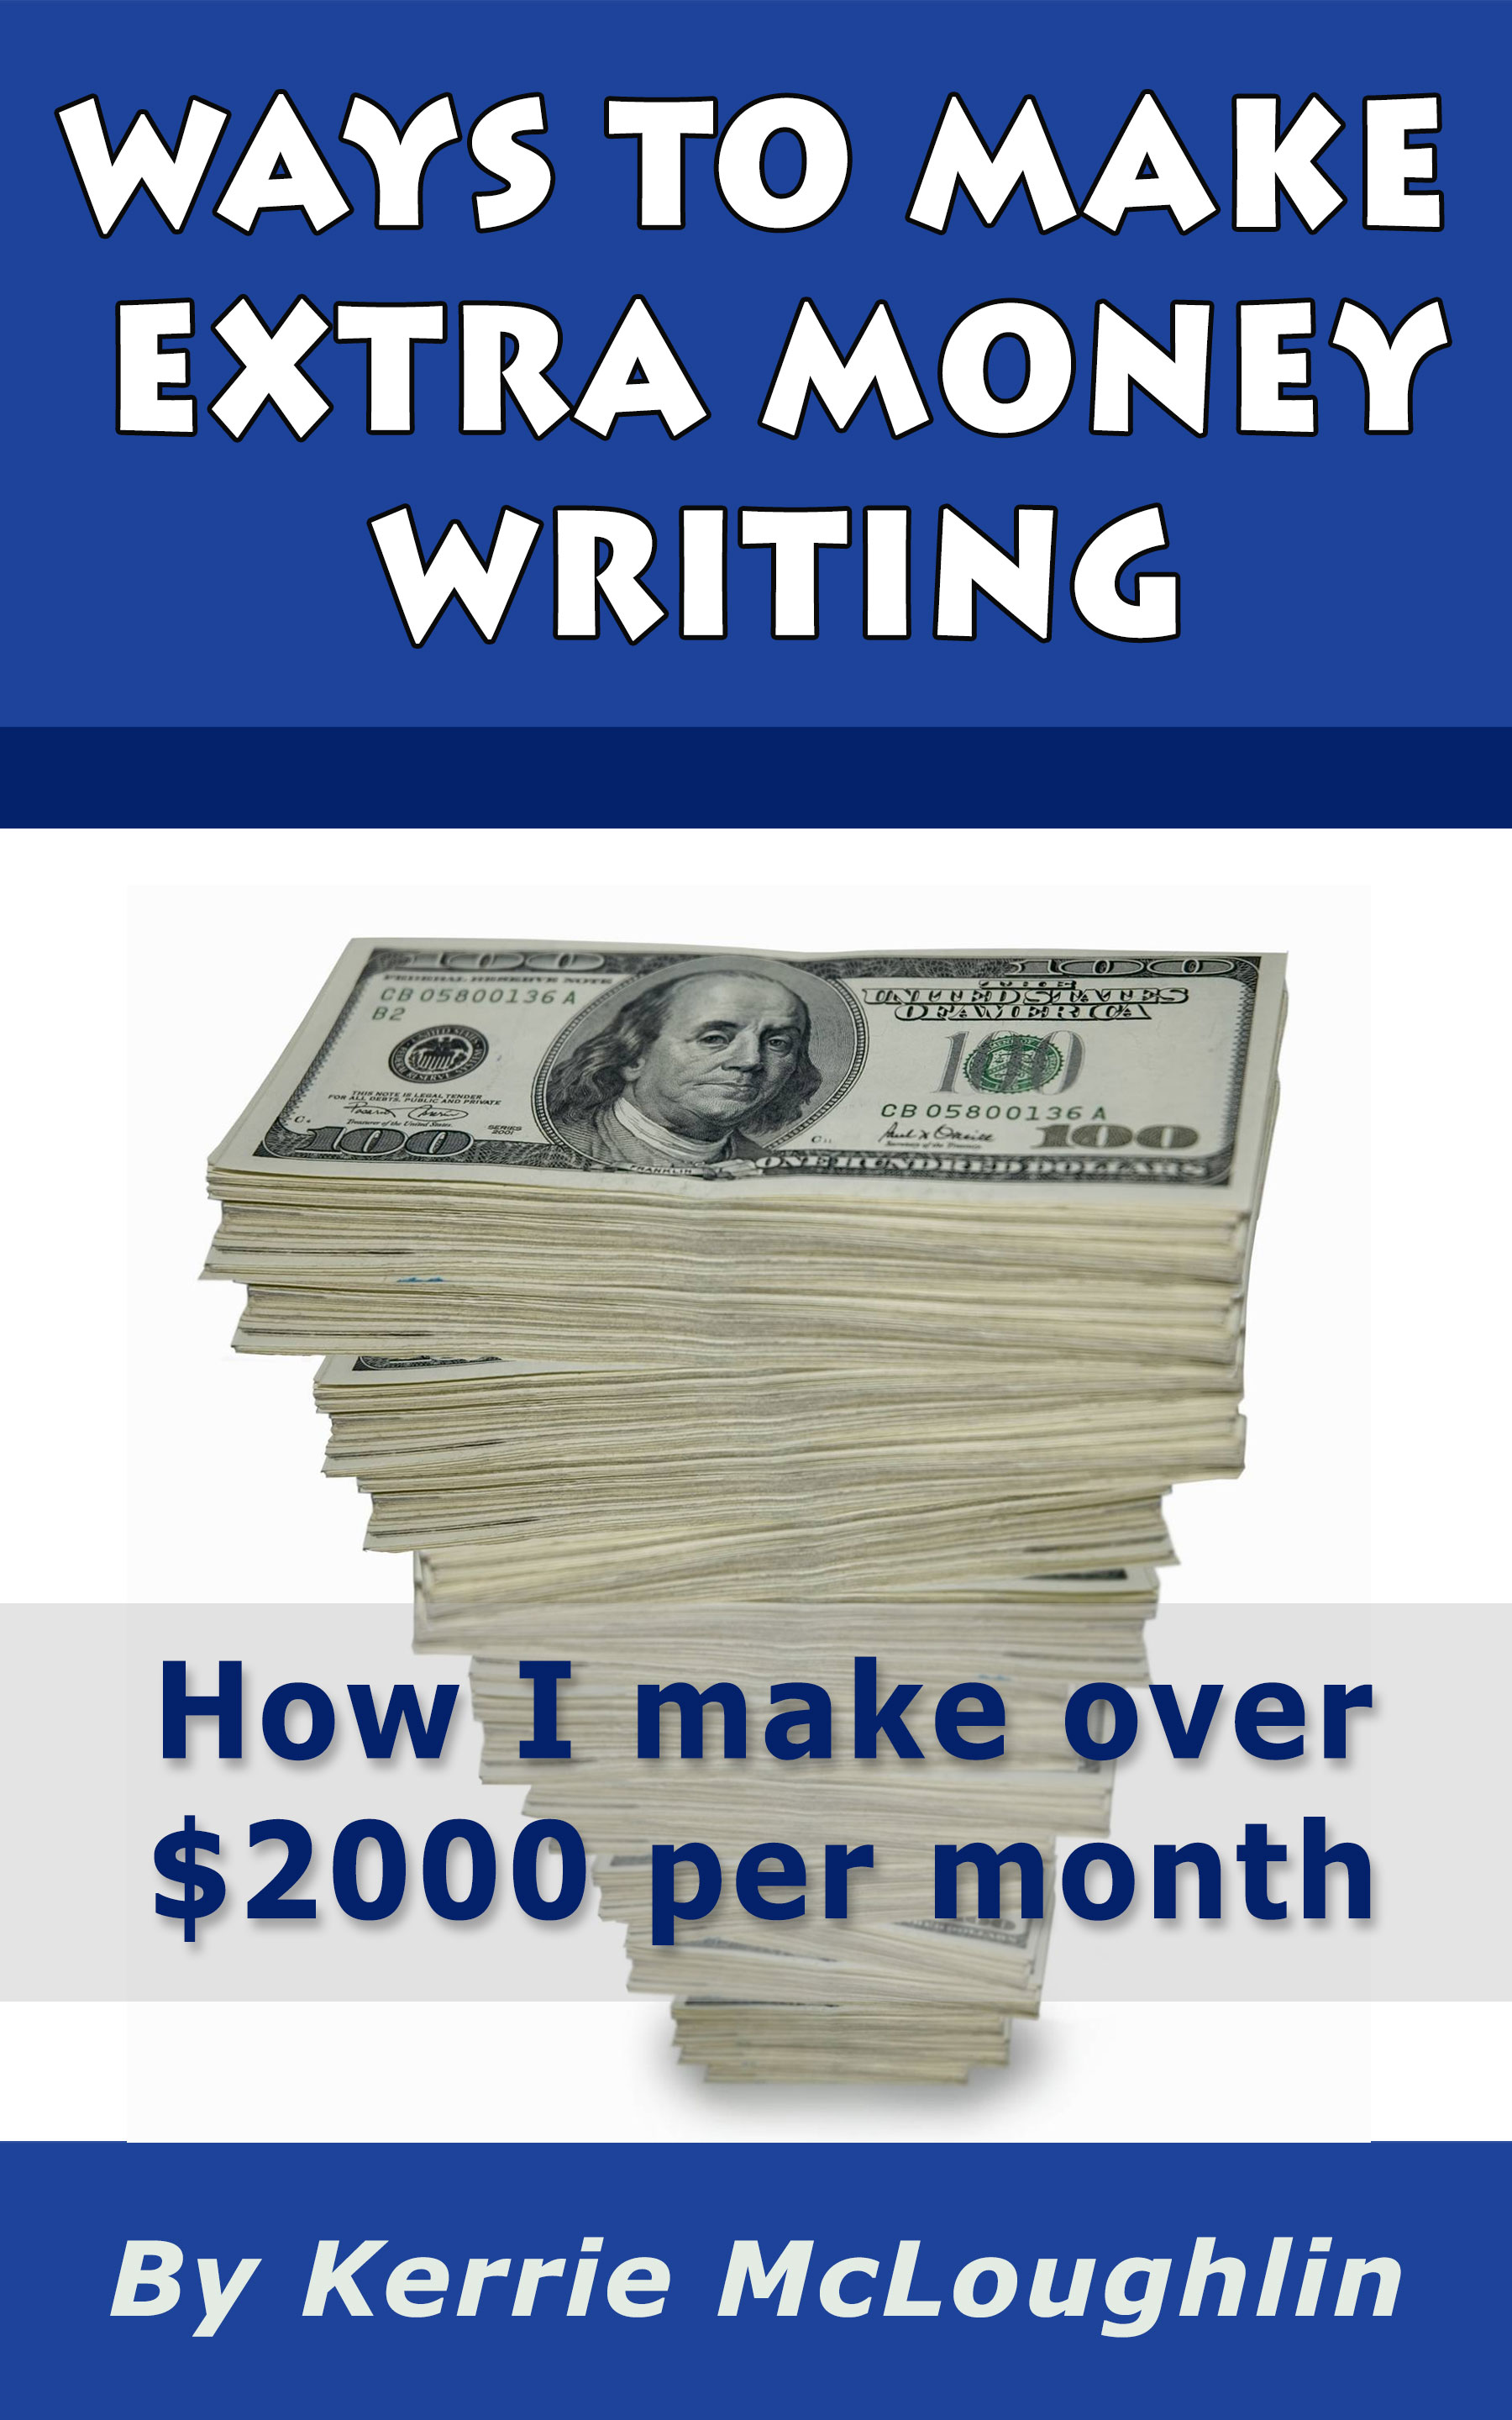 online essays for money Because we write essays for money it is important to ensure that we have all of the correct information and instructions from our customers our easy online ordering process takes you step-by-step through a pre-defined list of information we know we need.